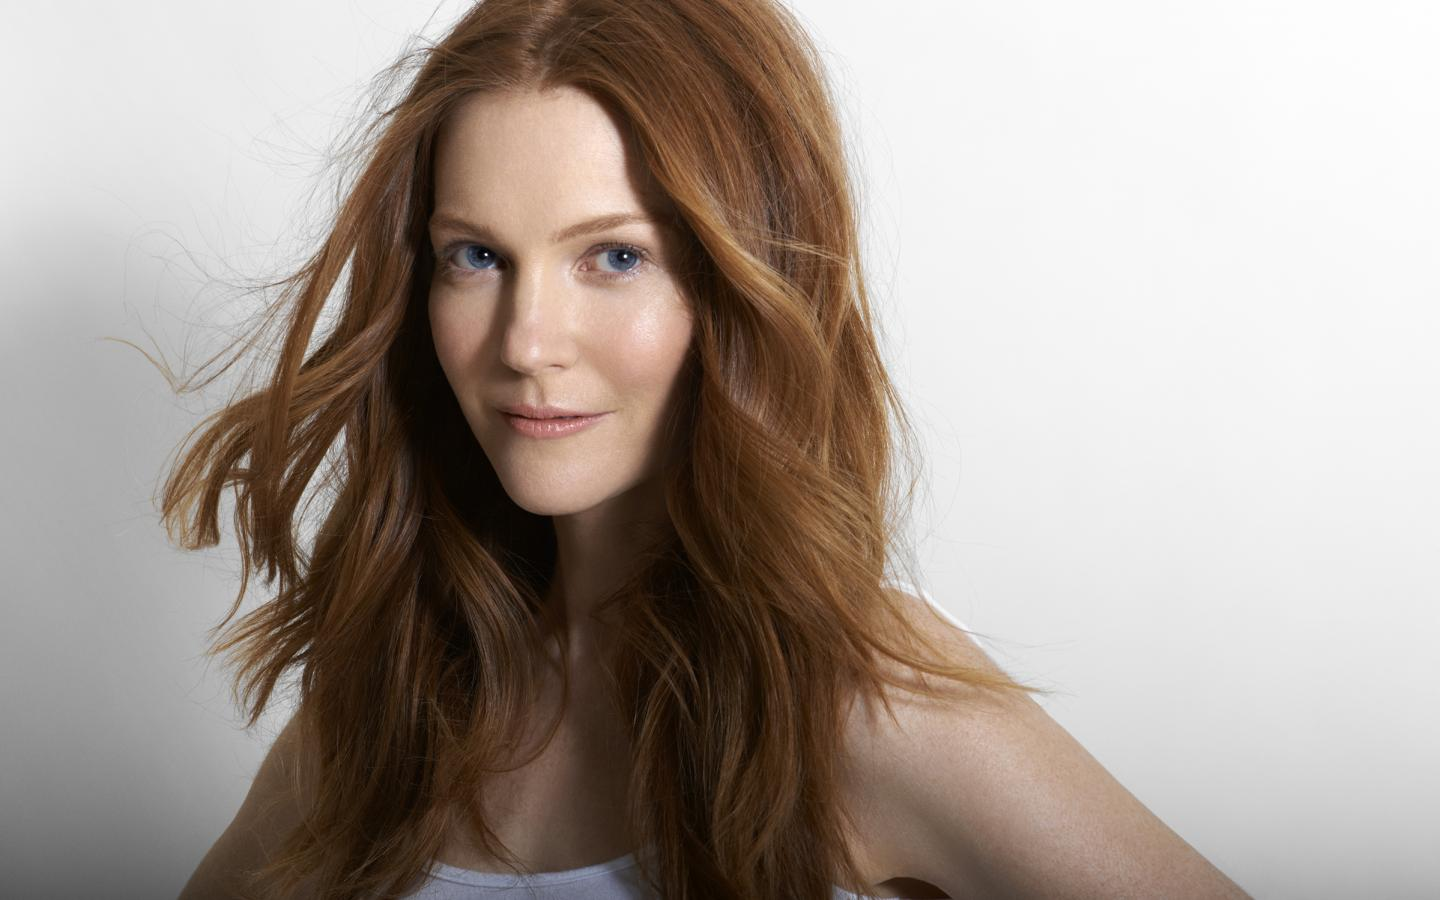 1440x900 - Darby Stanchfield Wallpapers 15